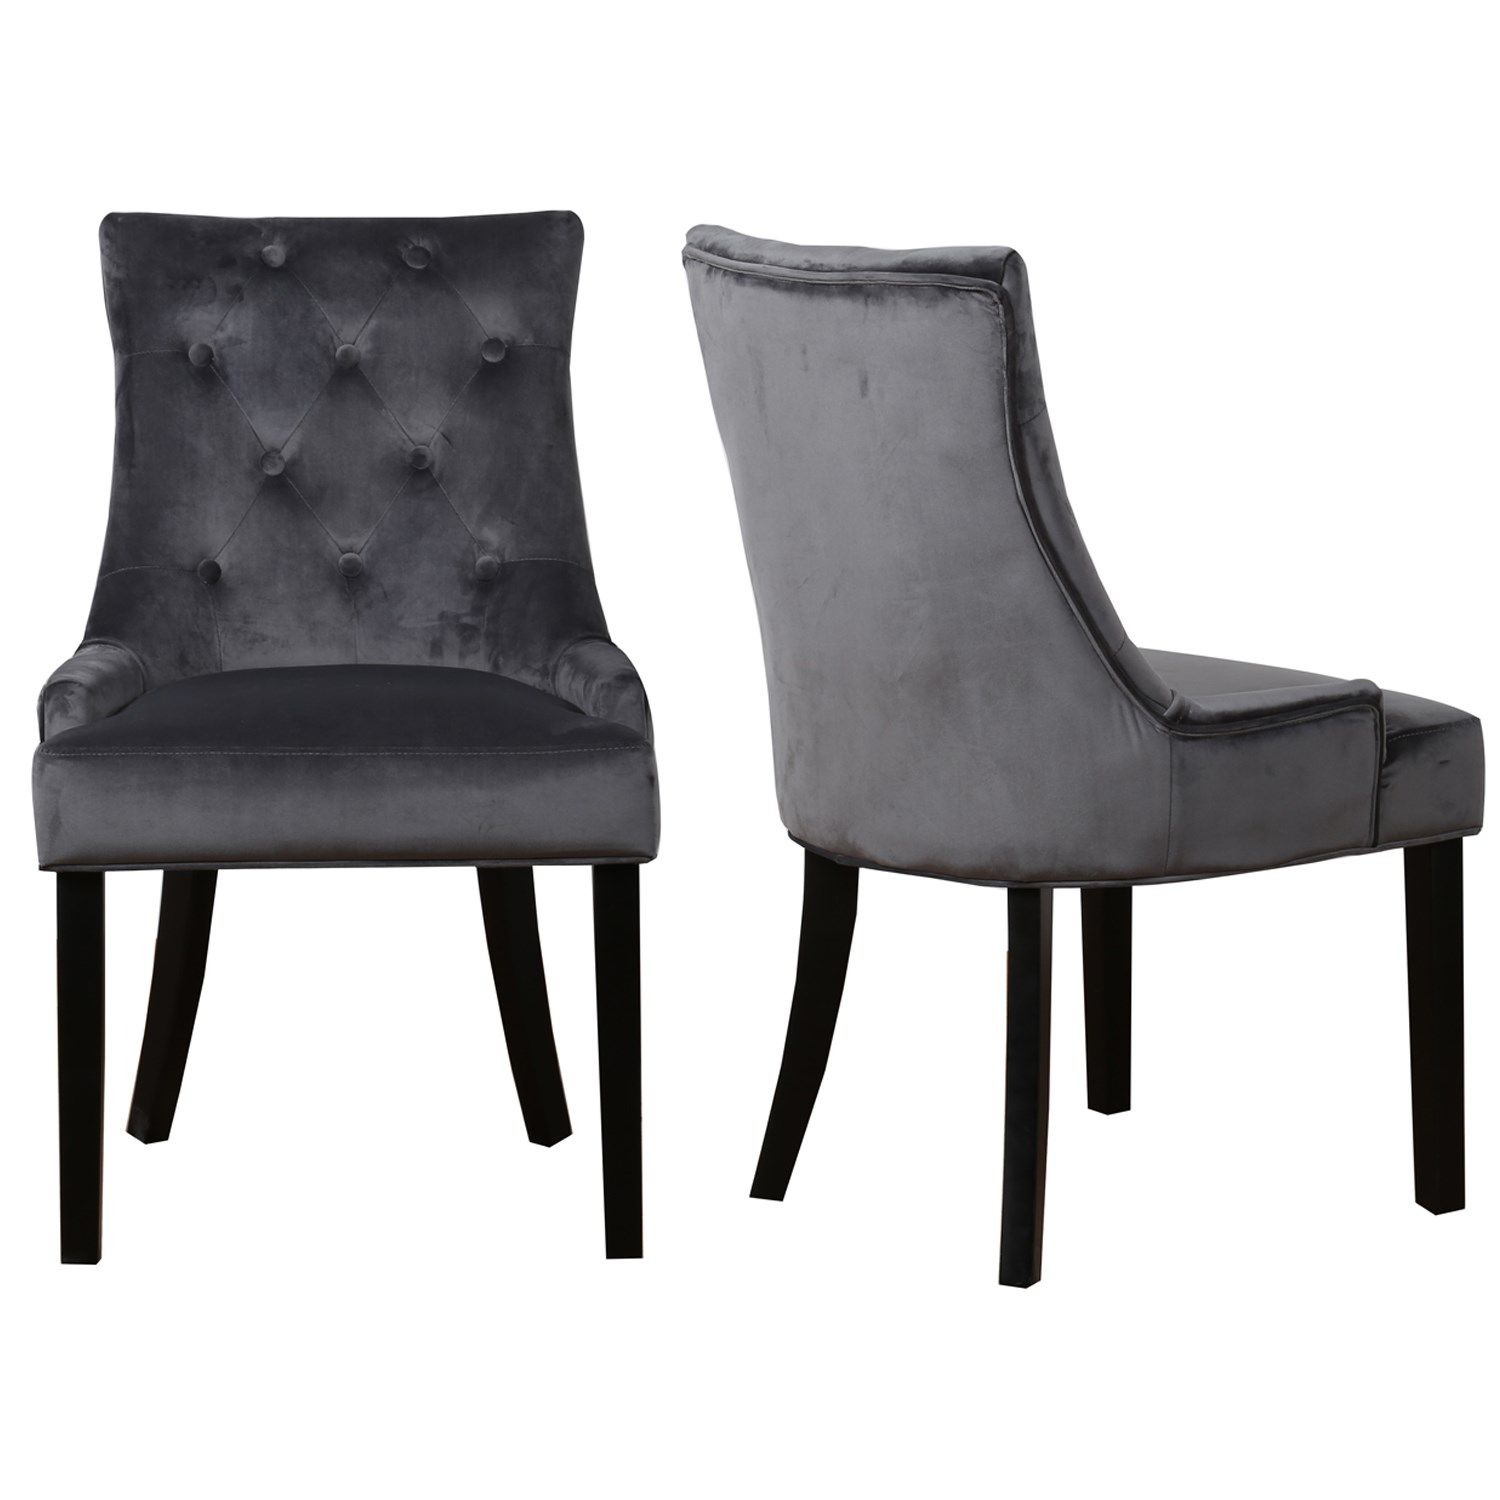 Kaylee Charcoal Pair Of Velvet Dining Chairs With Black Legs